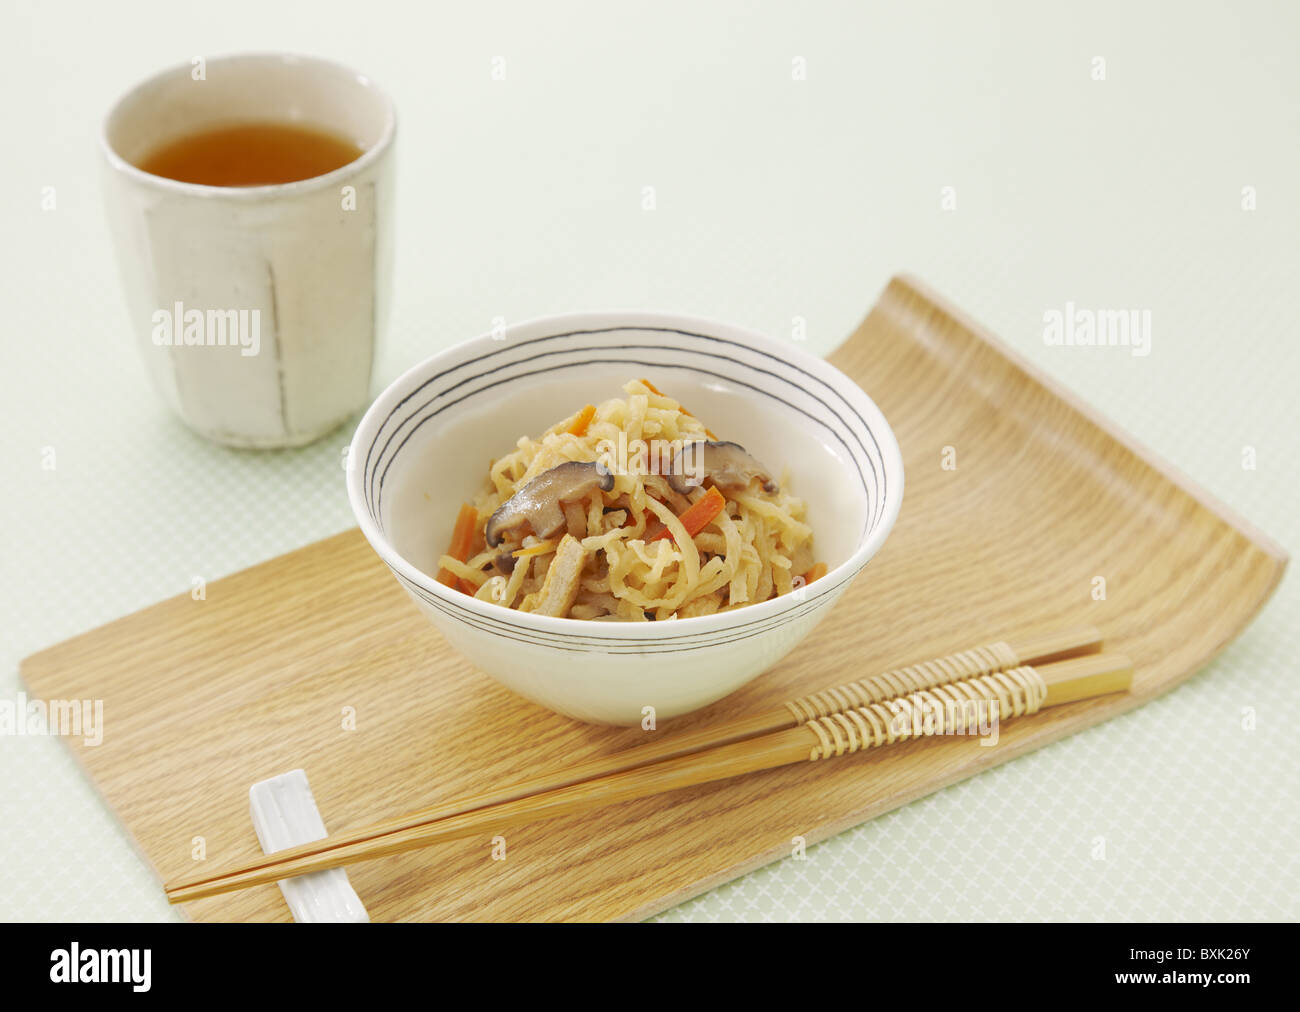 Shredded and dried daikon radish simmered in soy sauce - Stock Image